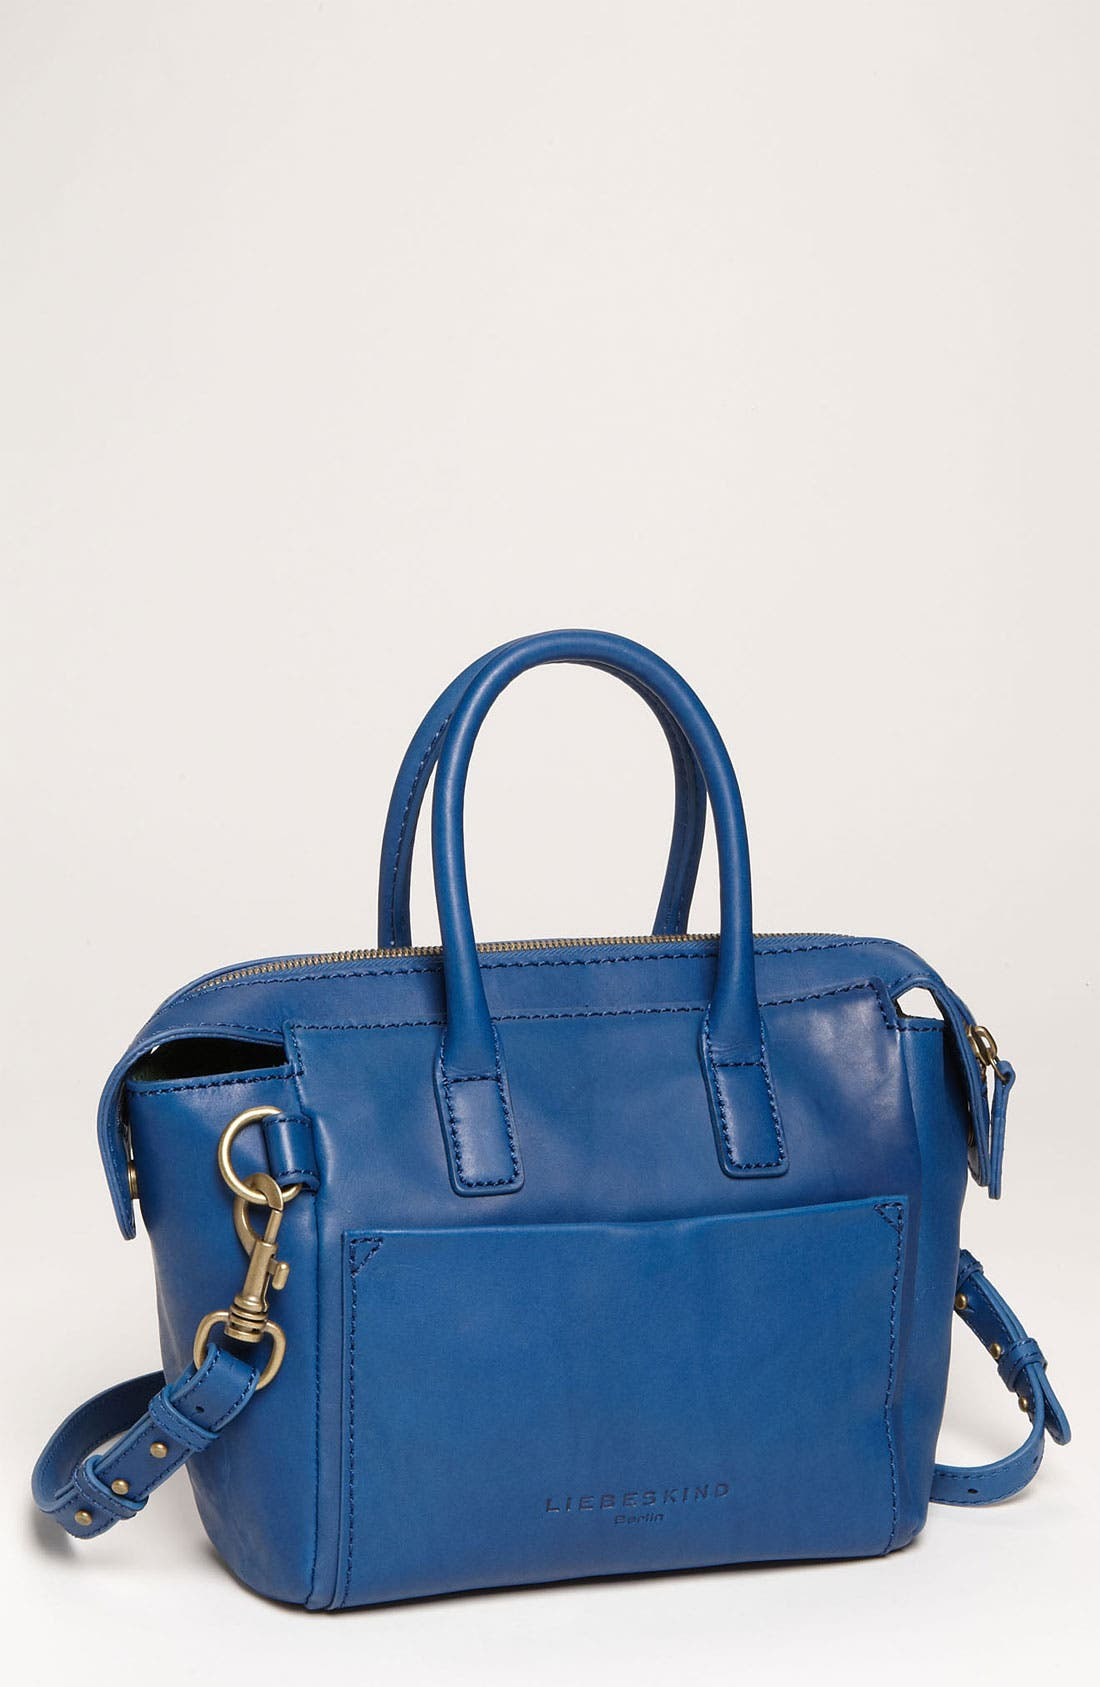 Alternate Image 1 Selected - Liebeskind 'Olbia' Satchel